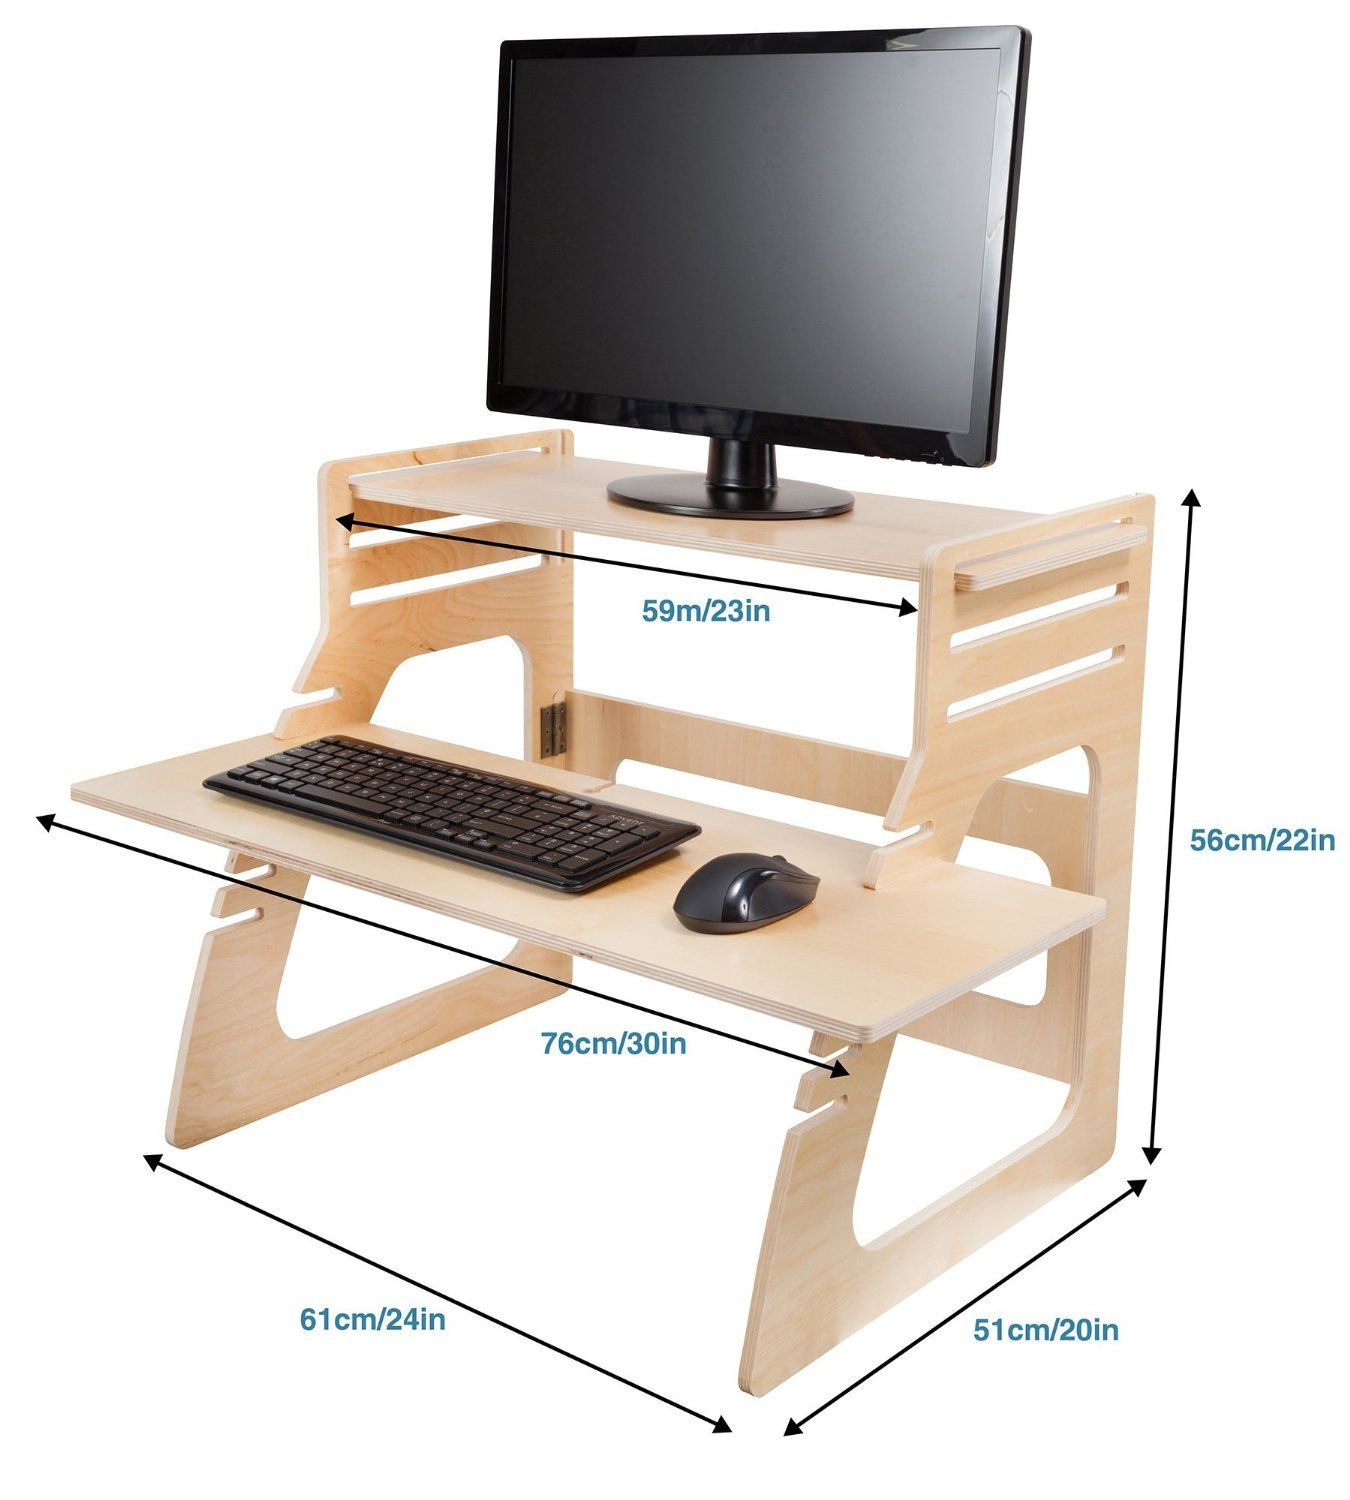 Amazon adjustable standing desk instantly converts any desk to